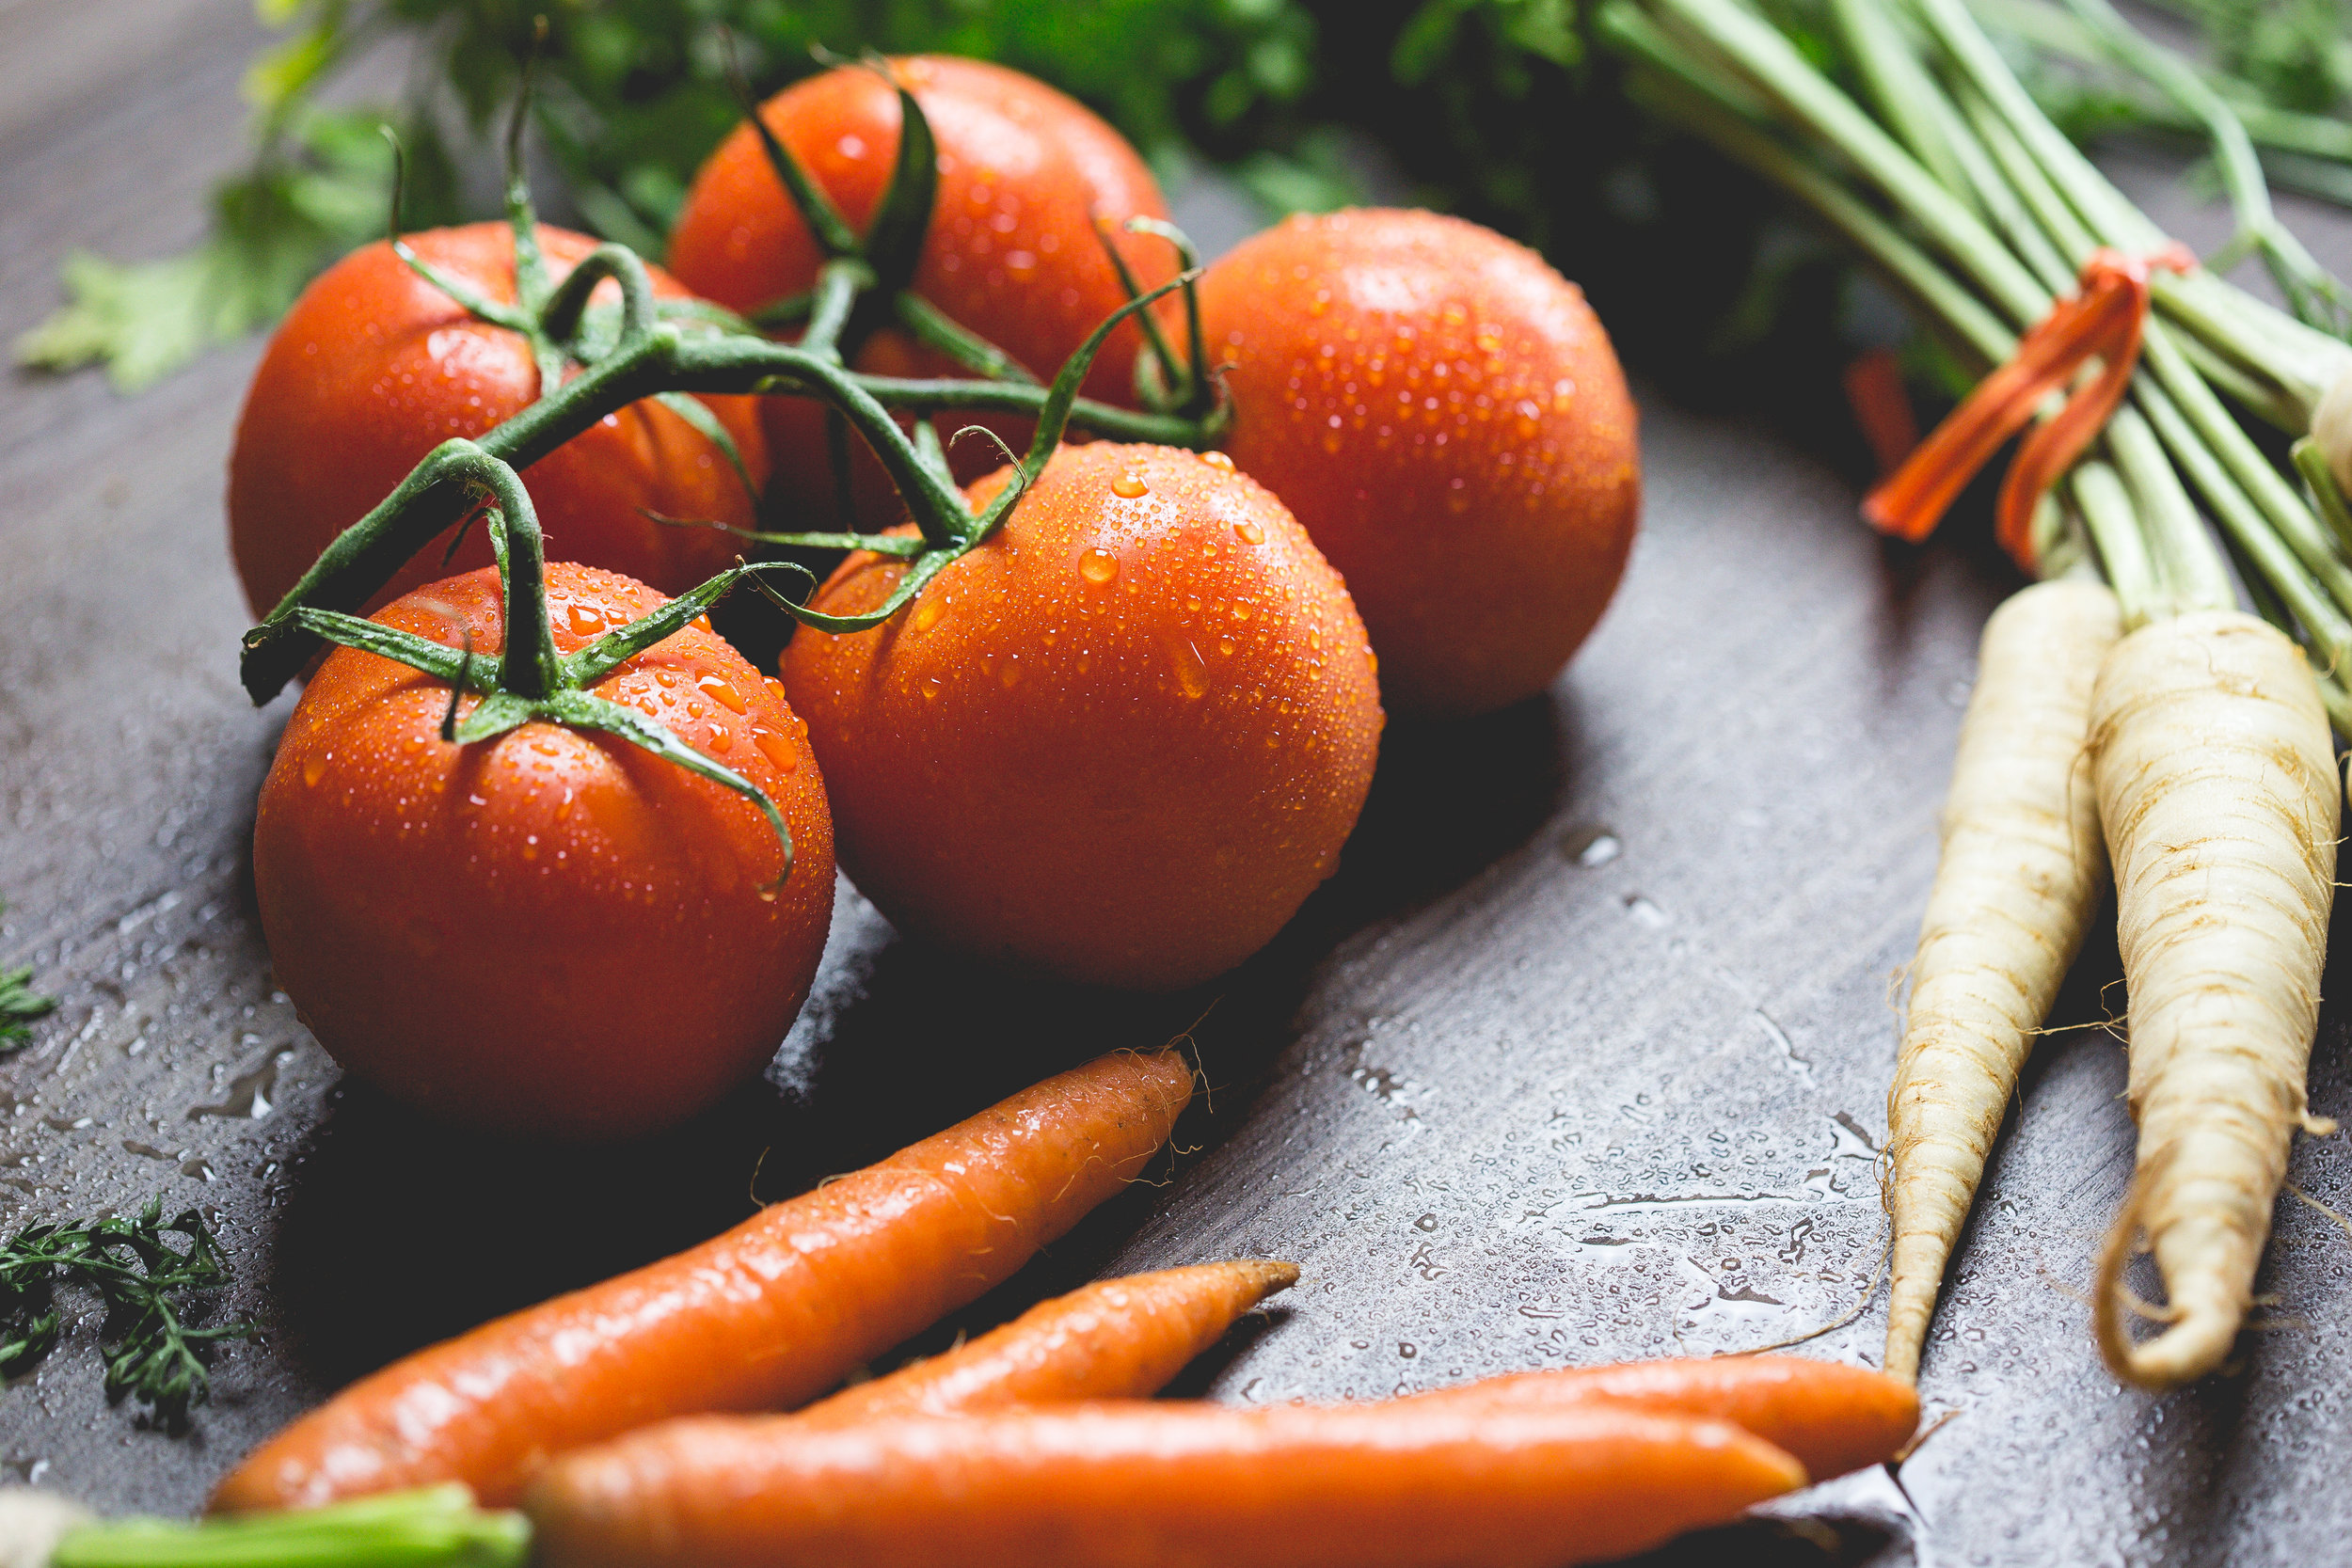 A cancer-fighting diet consists of mostly fruits and vegetables.